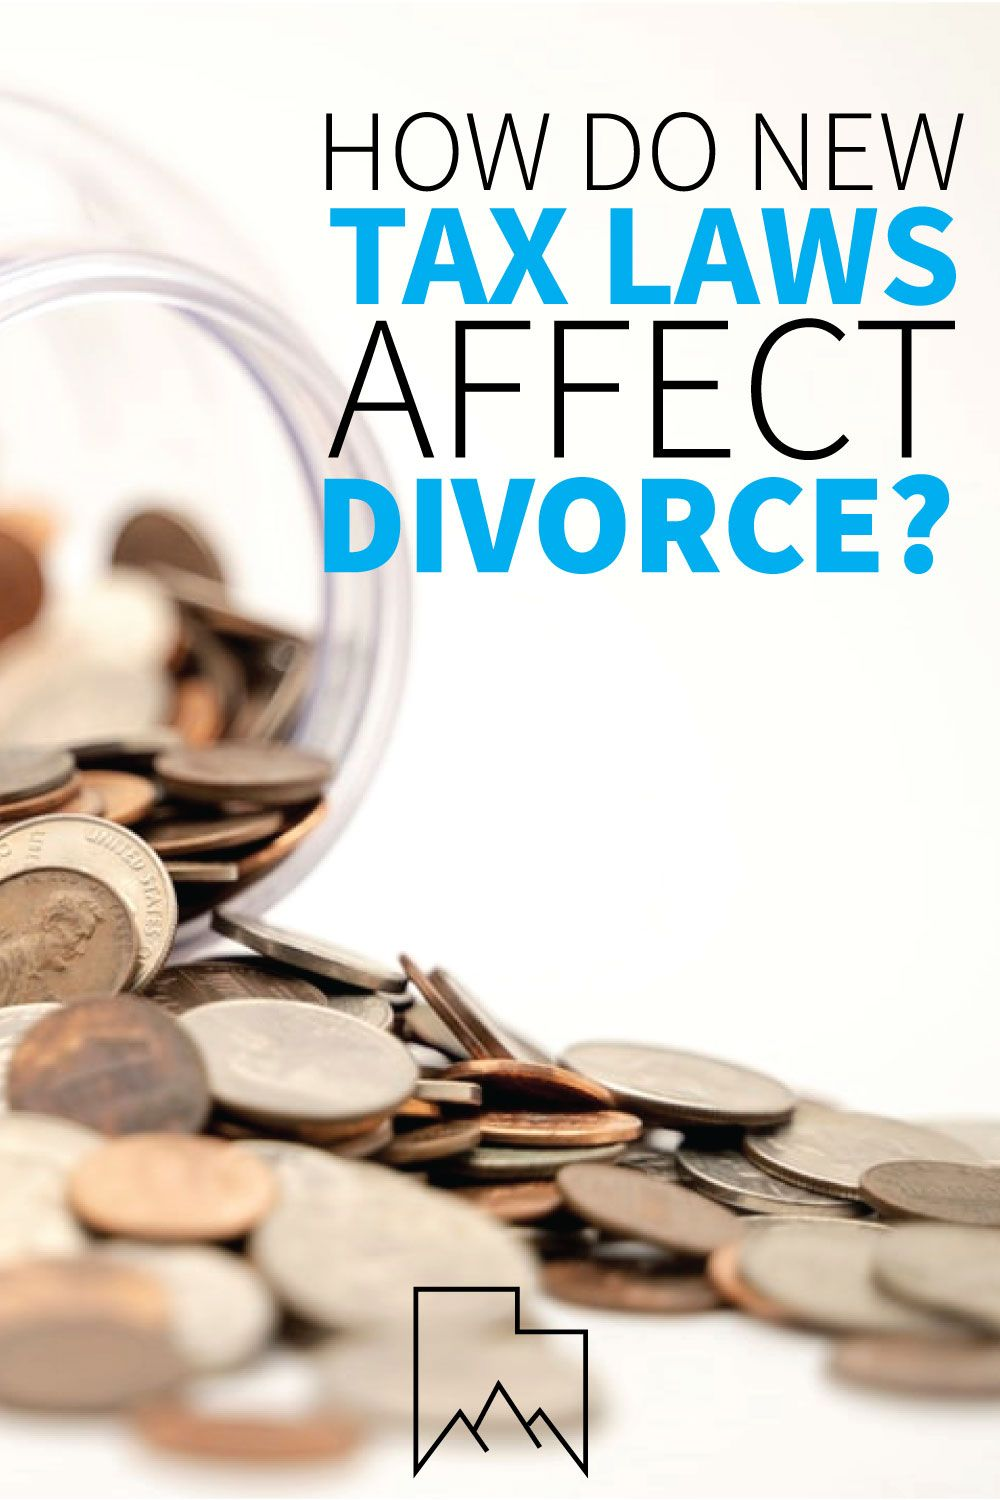 How the new tax law impacts divorce. Having an expert